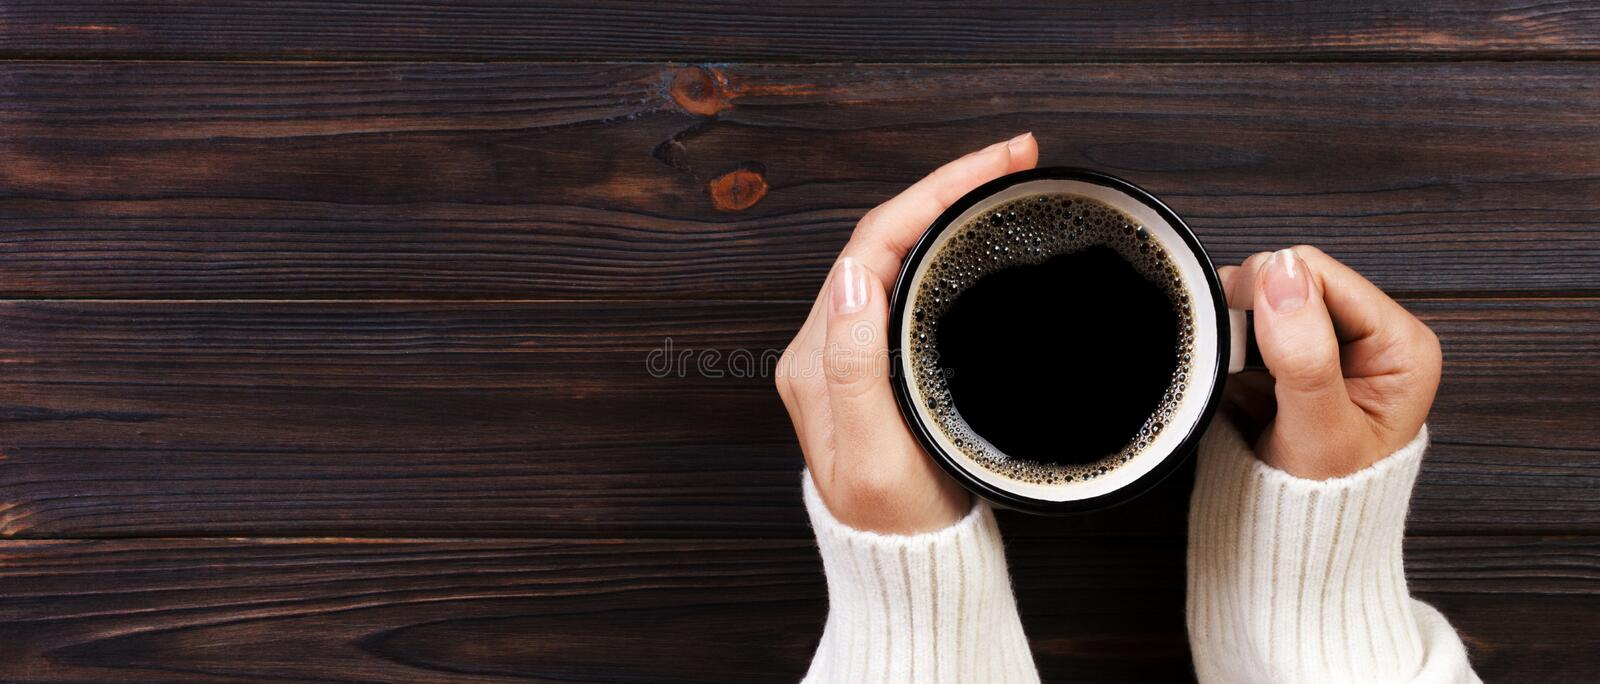 Lonely woman drinking coffee in the morning, top view of female hands holding cup of hot beverage on wooden desk. Banner royalty free stock image